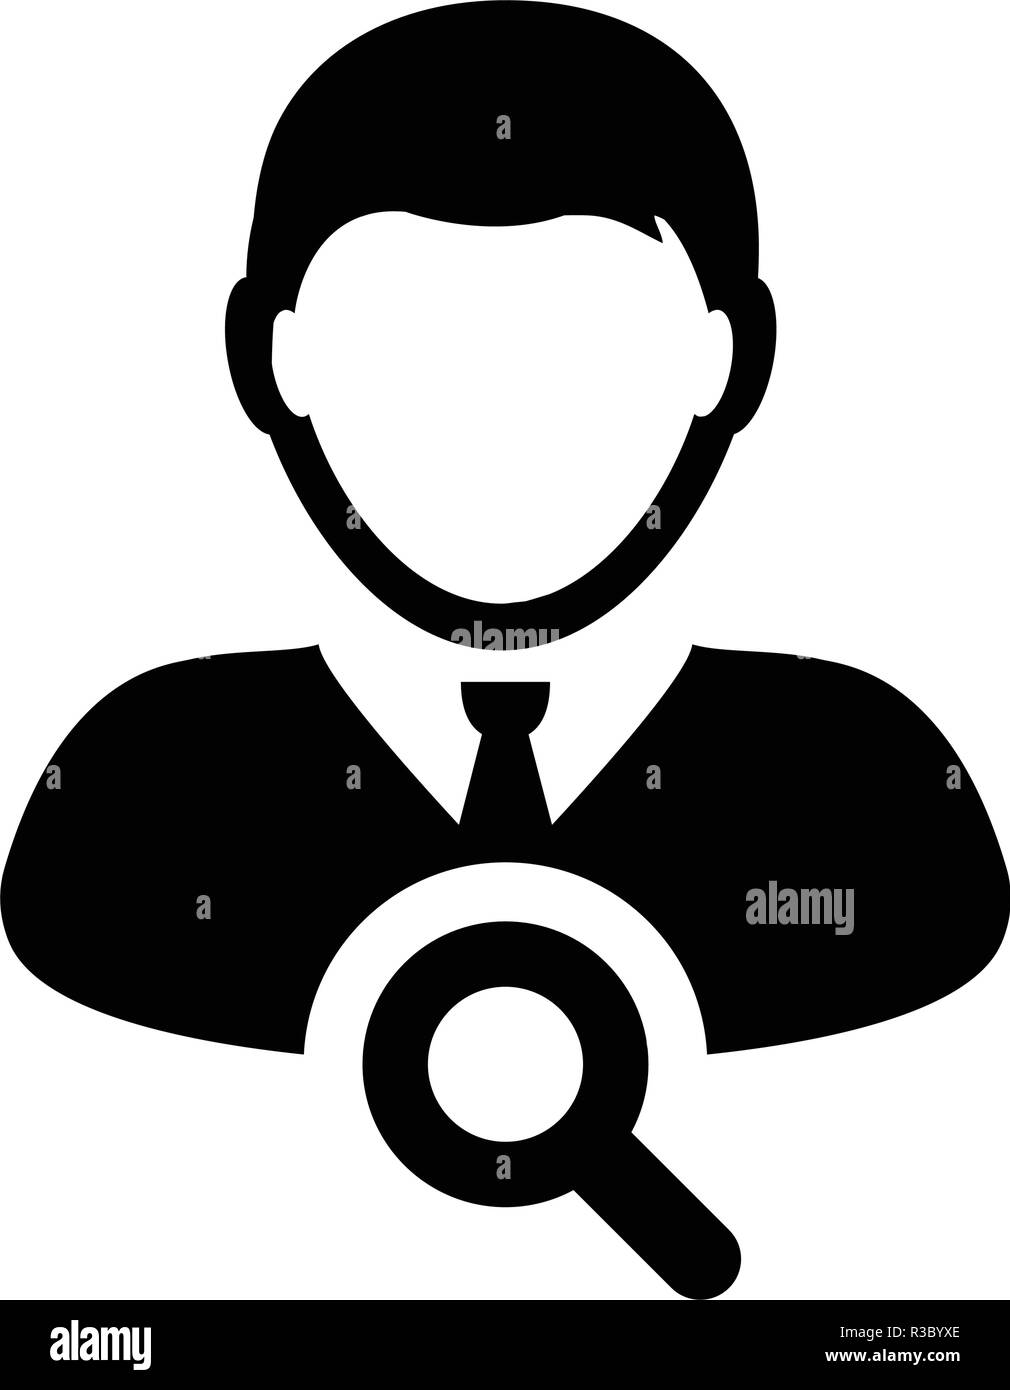 Search user icon vector male person profile avatar symbol with magnifying glass in flat color glyph pictogram illustration - Stock Image